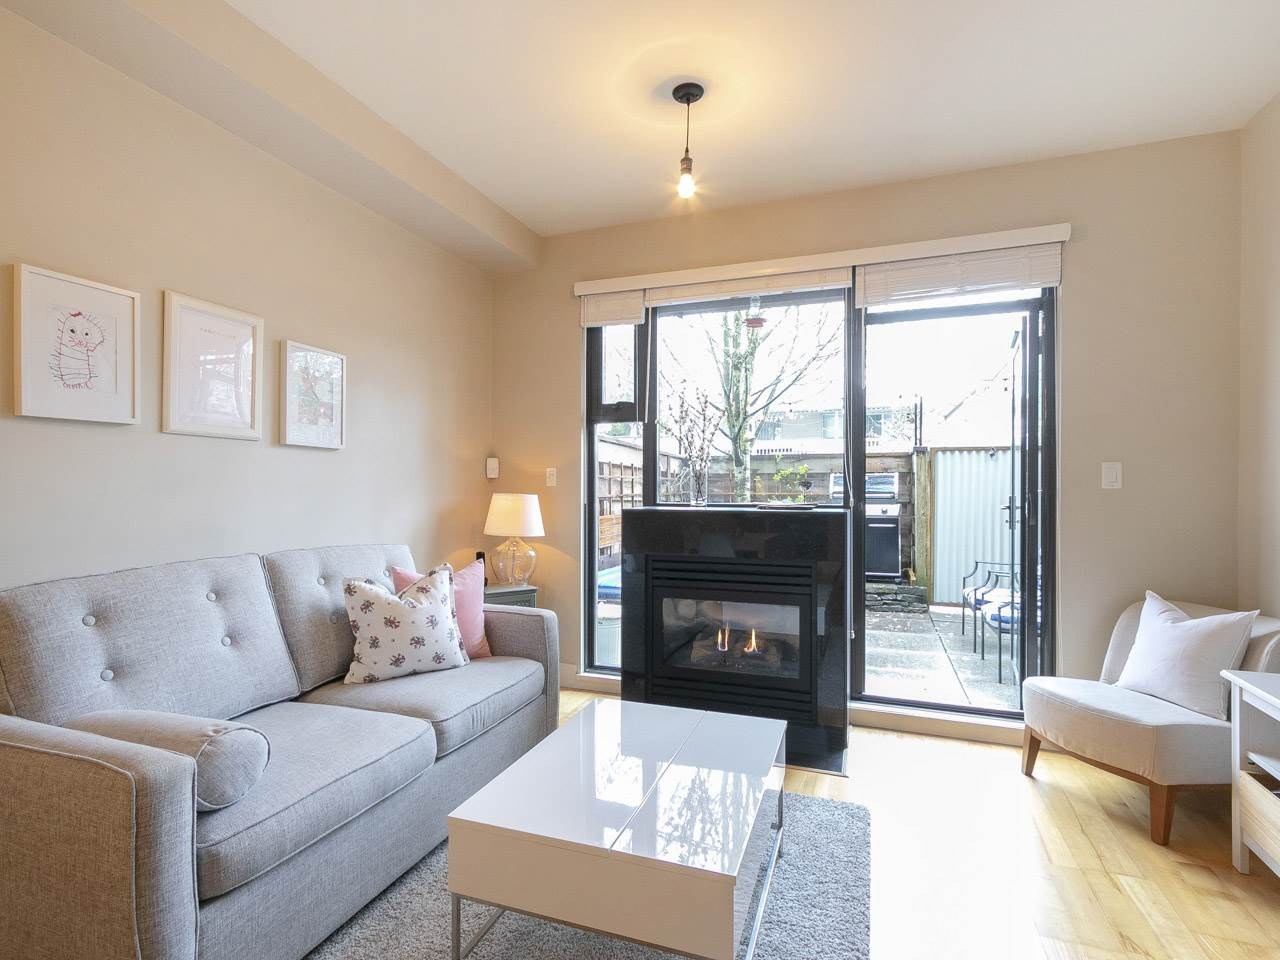 Main Photo: 3782 COMMERCIAL STREET in Vancouver: Victoria VE Townhouse for sale (Vancouver East)  : MLS®# R2258511